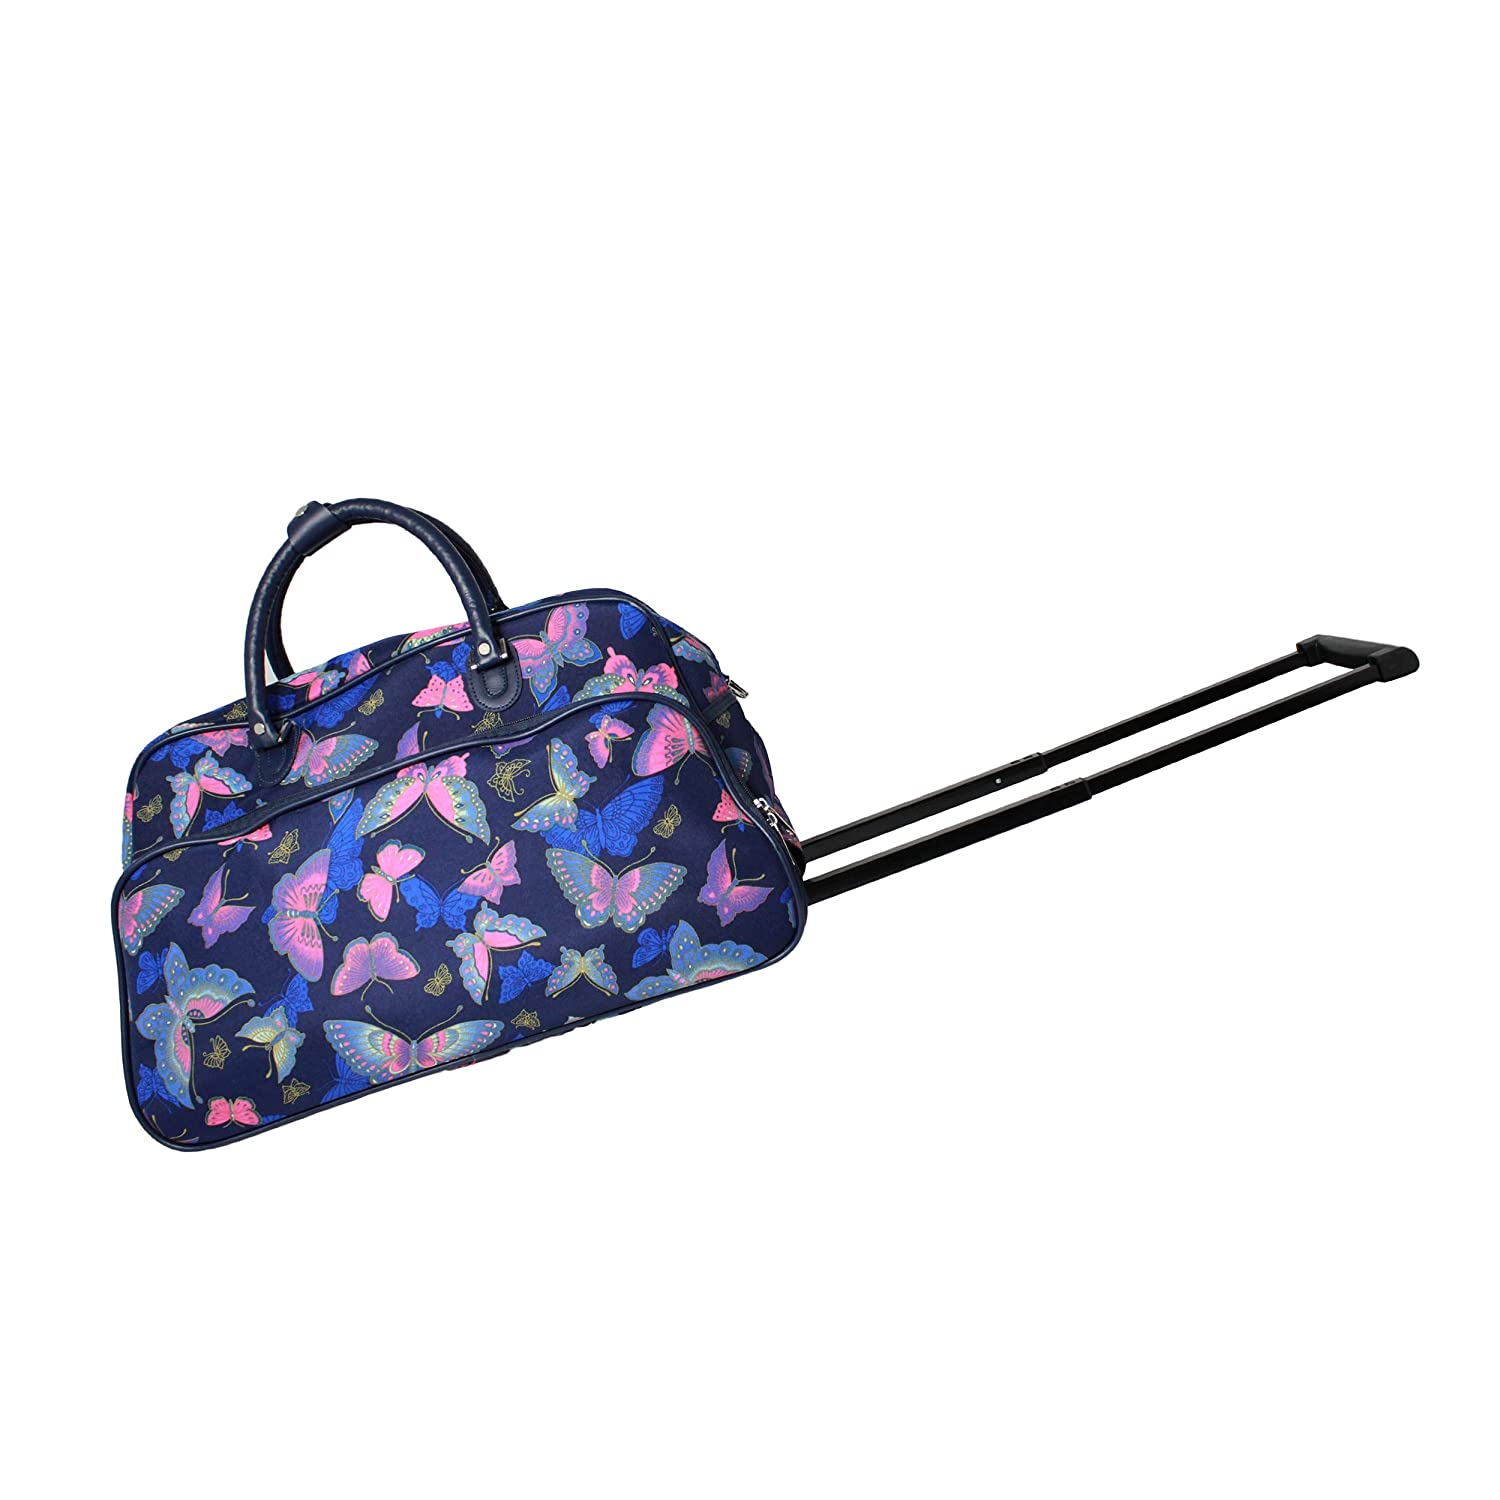 World Traveler Blue Moon Butterfly 21-Inch Carry-On Rolling Duffel Bag